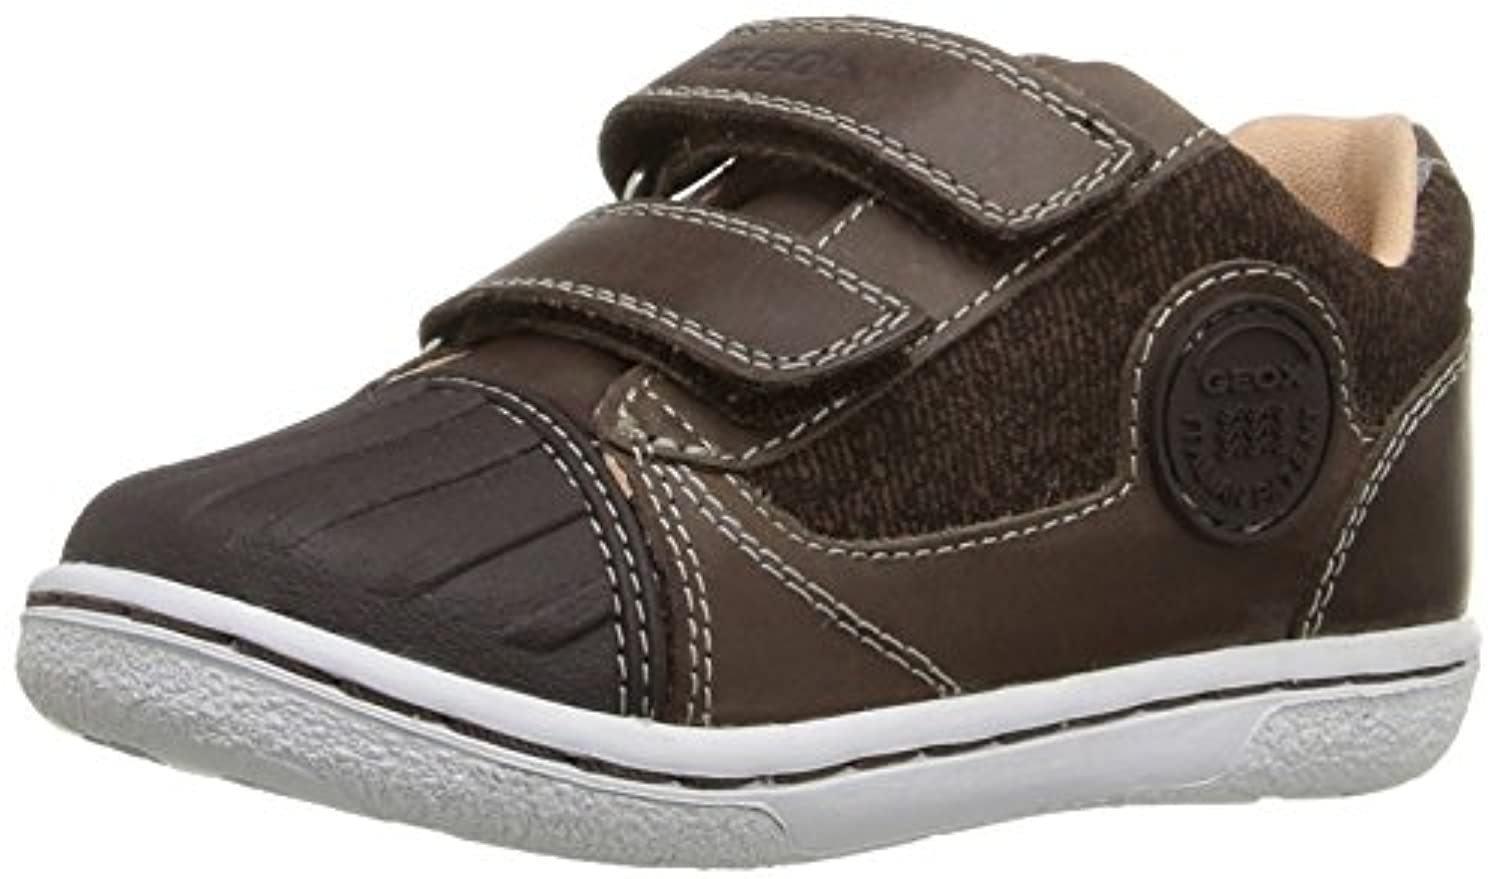 Geox Baby Boys' B Flick B Walking Shoes, Blau (NAVYC4002), 20 UK